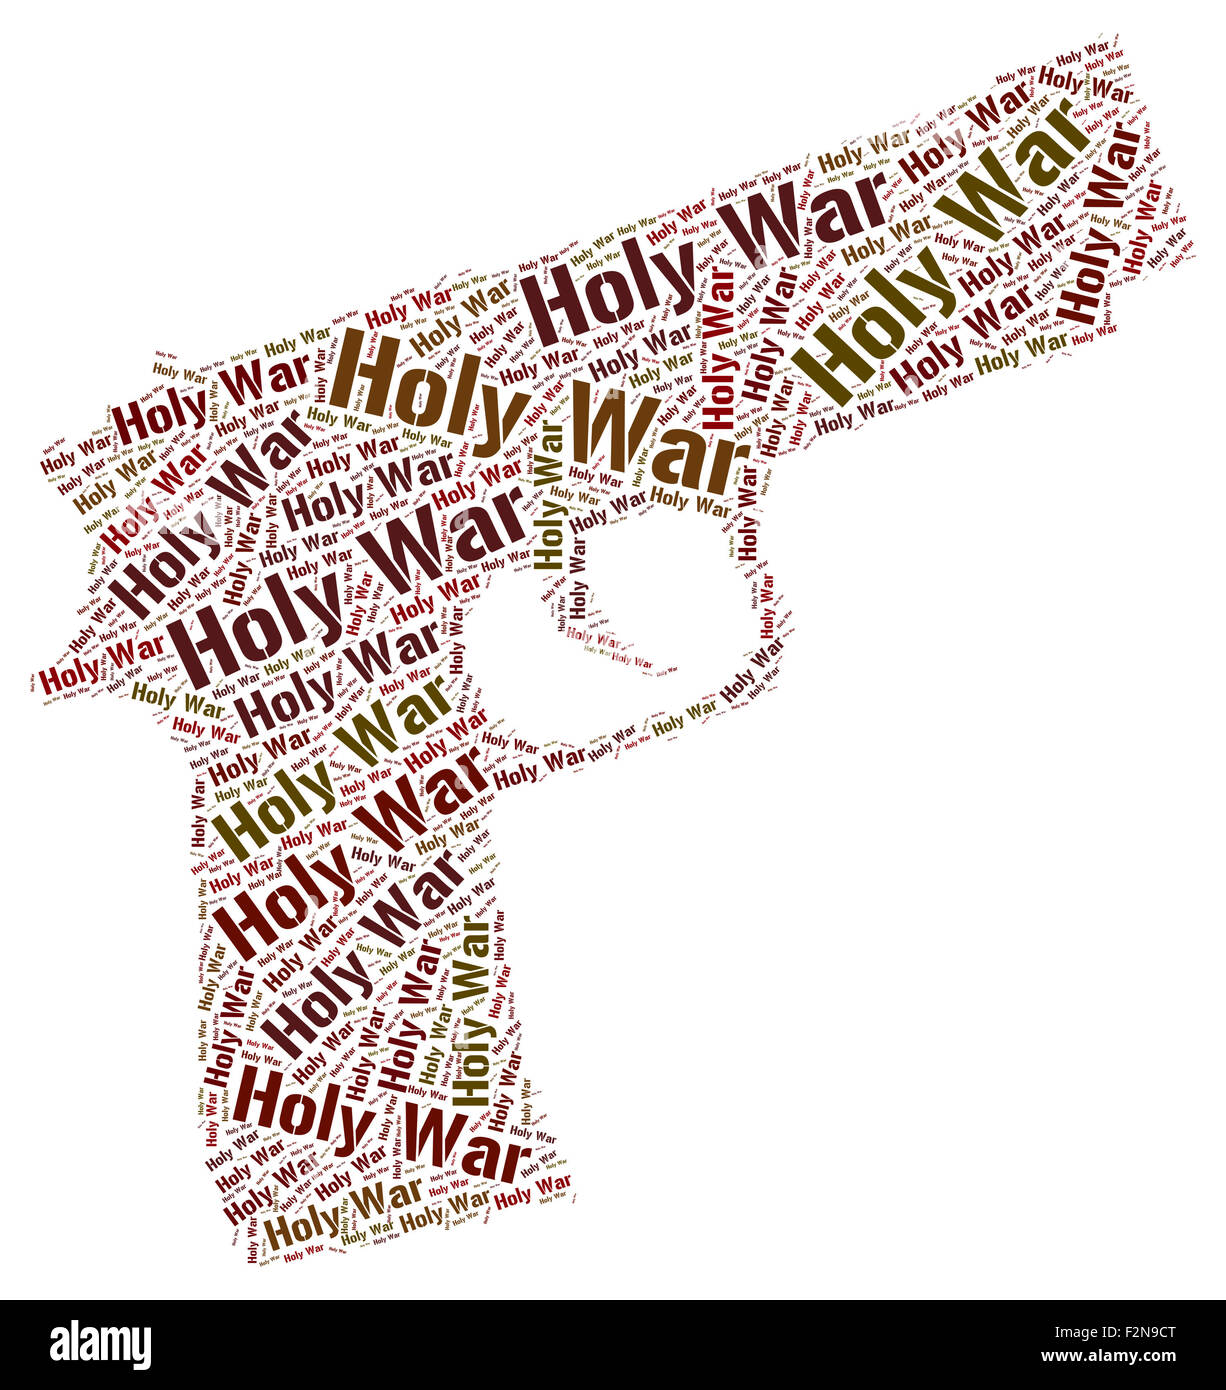 Holy War Showing Hallowed Revered And Word - Stock Image